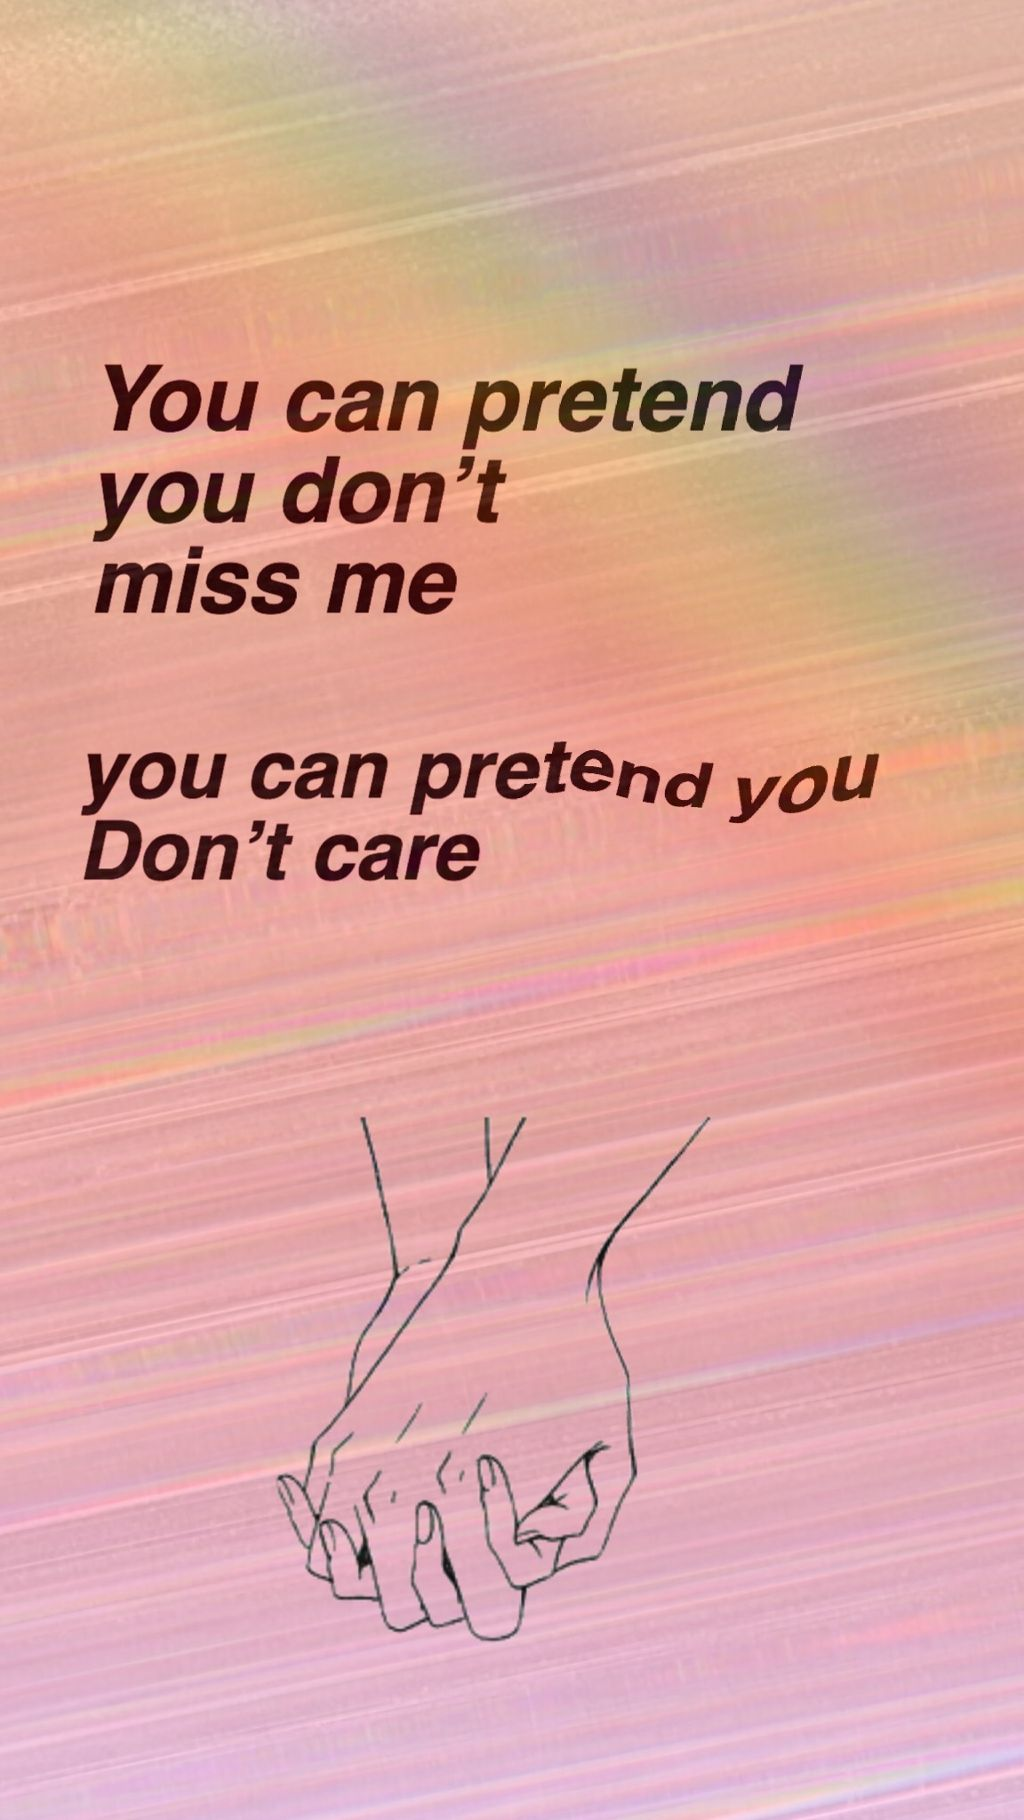 freetoedit billieeilish lyric music lyrics wallpaper 1024x1820